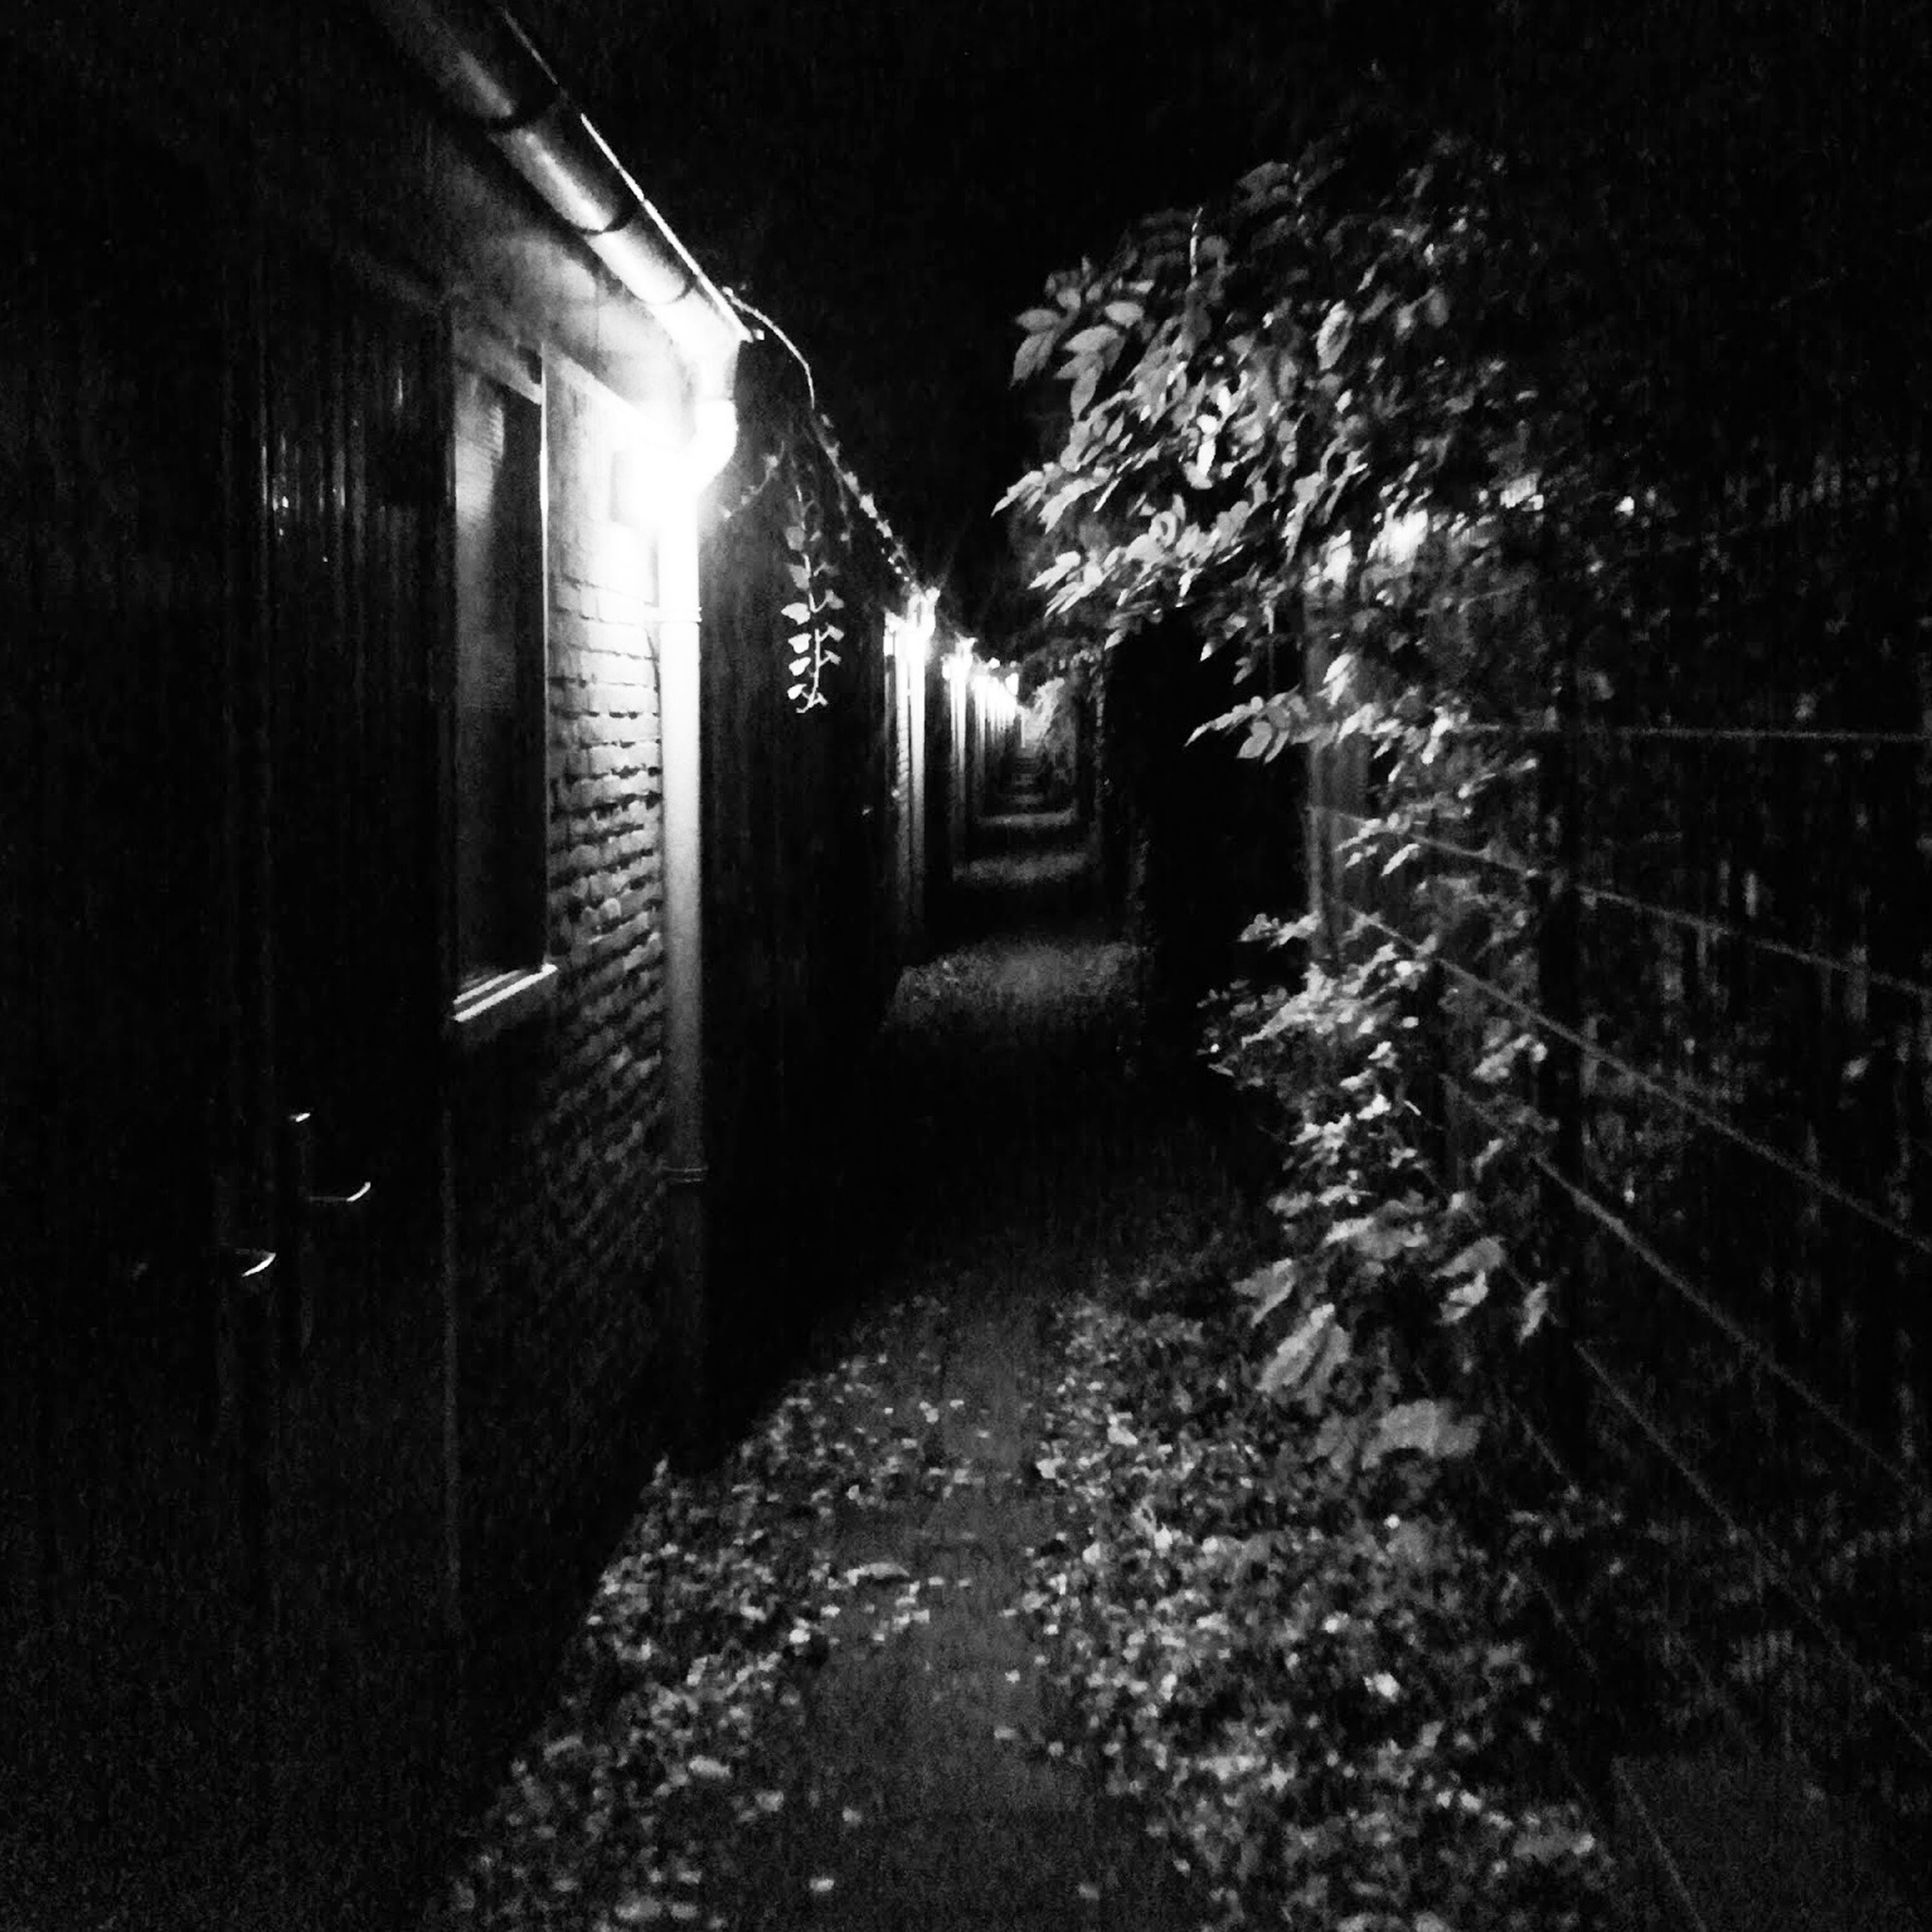 architecture, built structure, night, abandoned, building exterior, the way forward, illuminated, wall - building feature, building, house, old, obsolete, damaged, no people, empty, deterioration, run-down, indoors, absence, wall